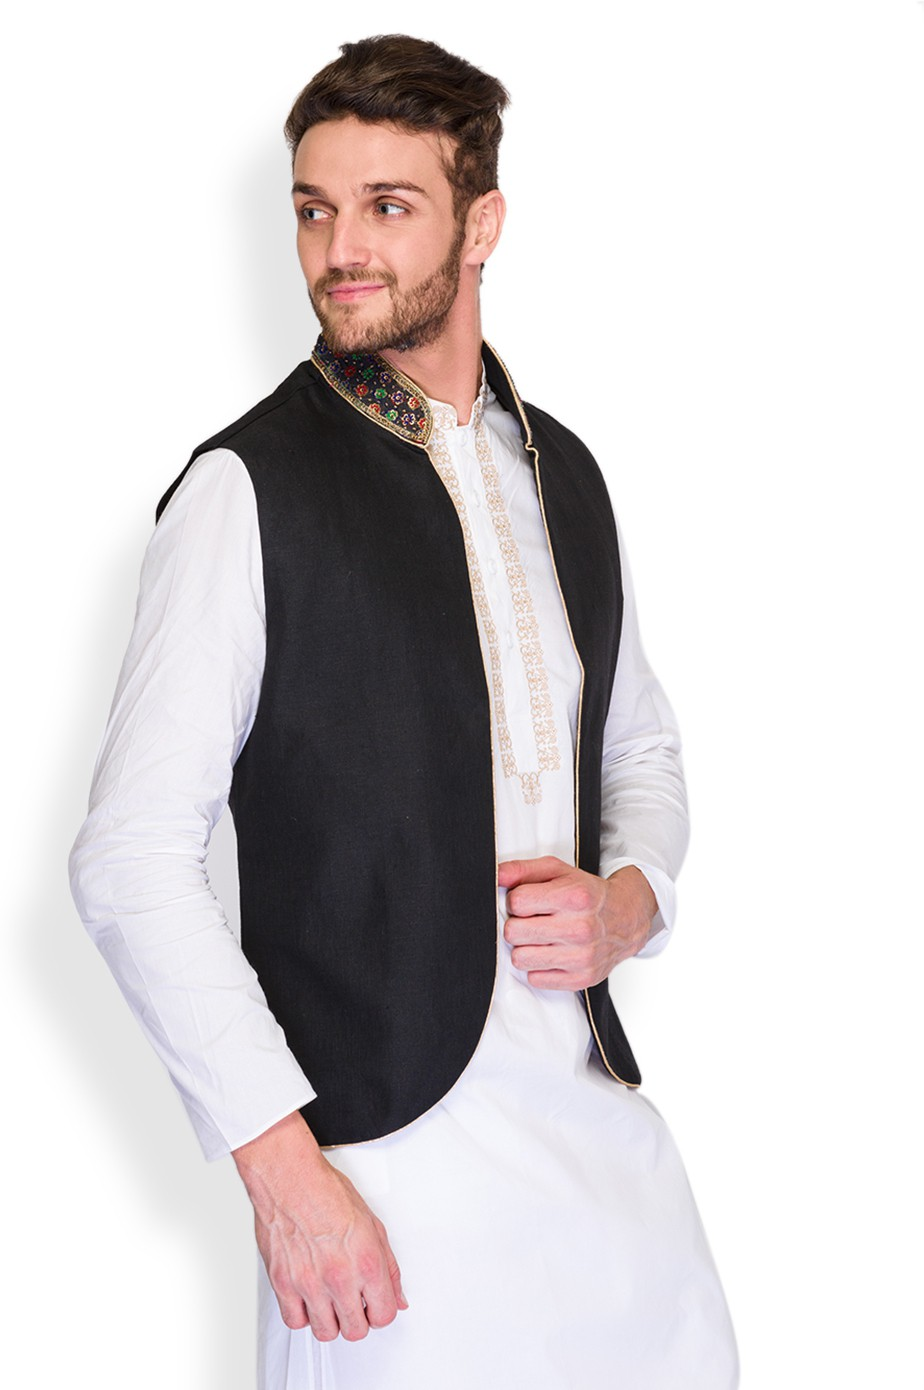 Raymond Solid Men 39 S Waistcoat Price In India On 16 07 2017